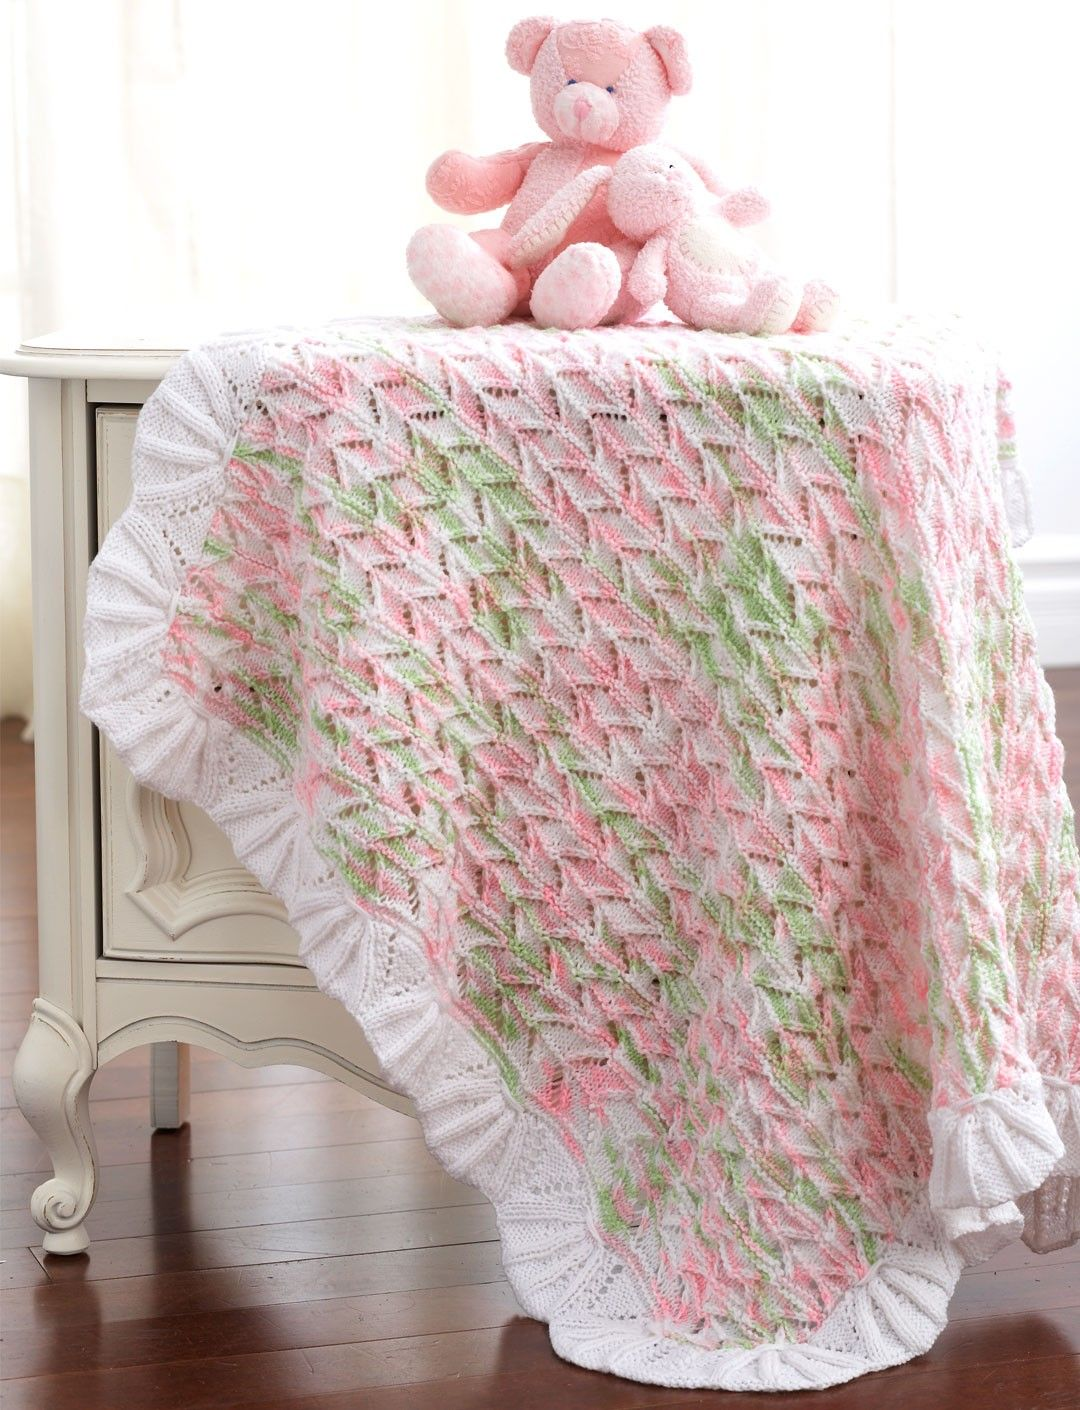 Free knitting pattern for Lacy Blanket with heirloom look and more ...